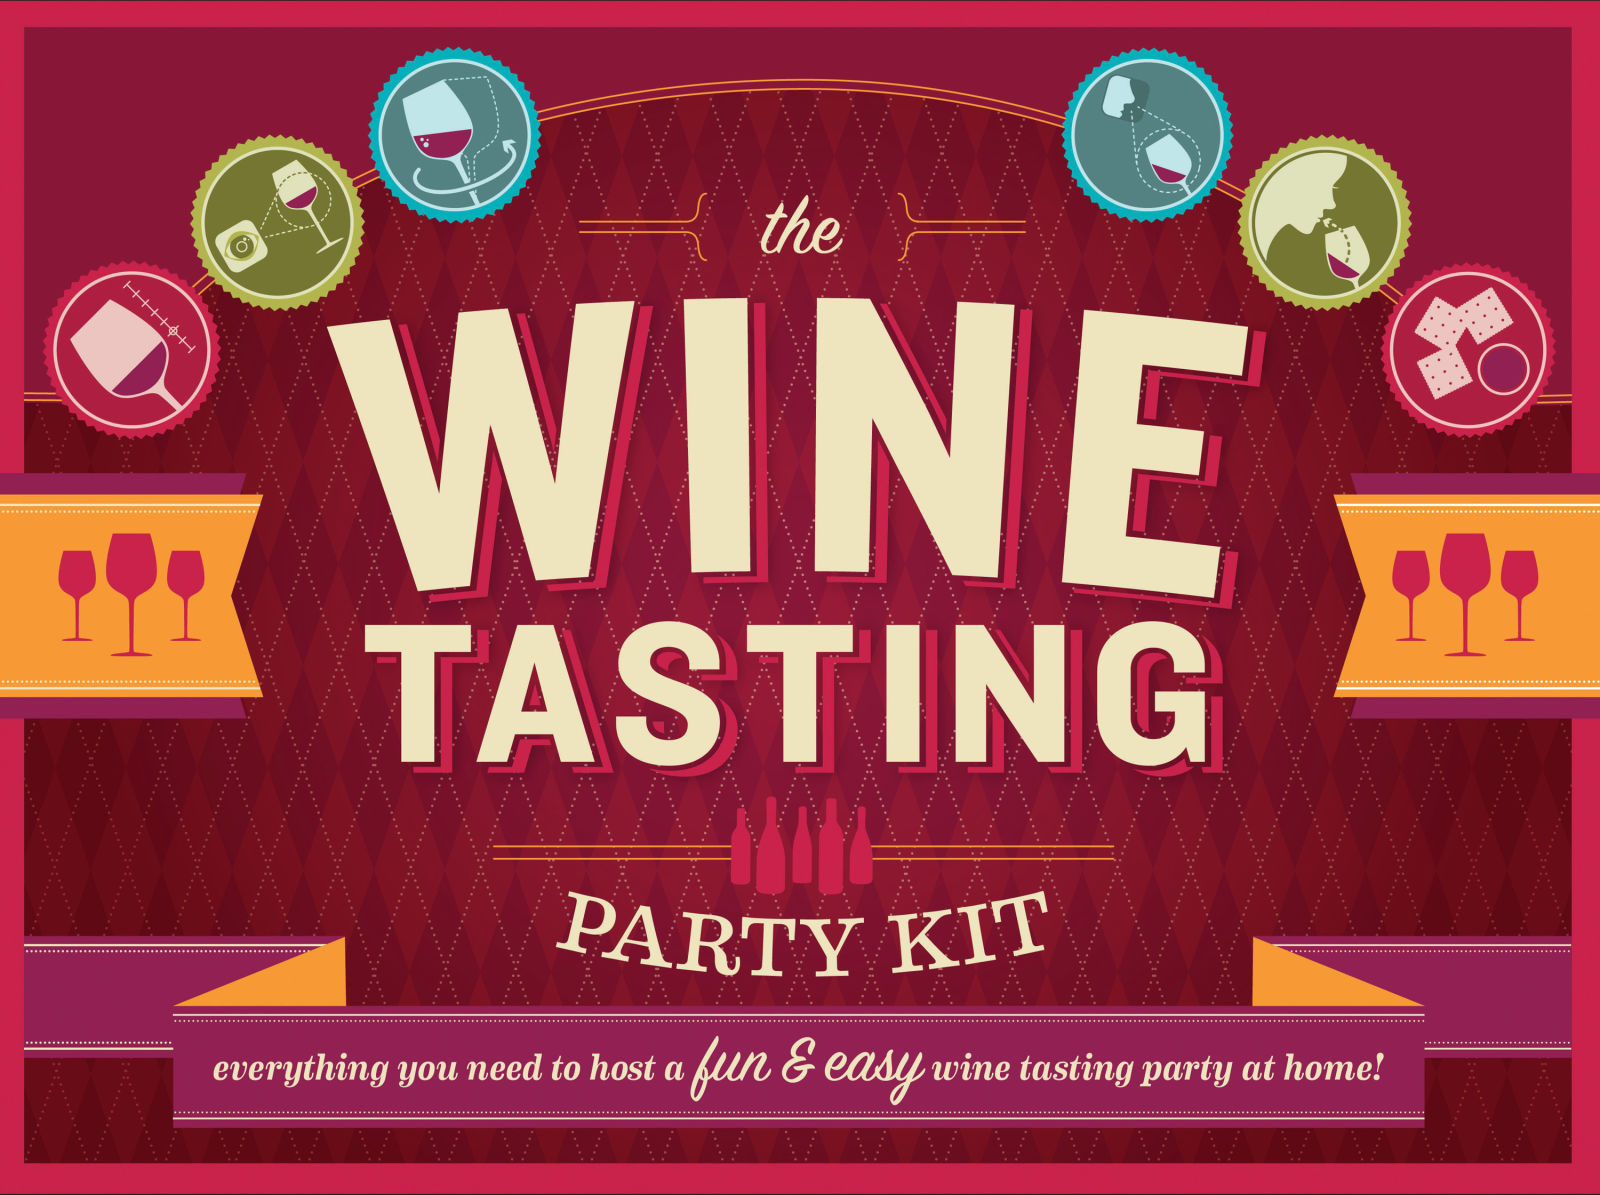 54fefa199d636-ghk-wine-tasting-party-kit